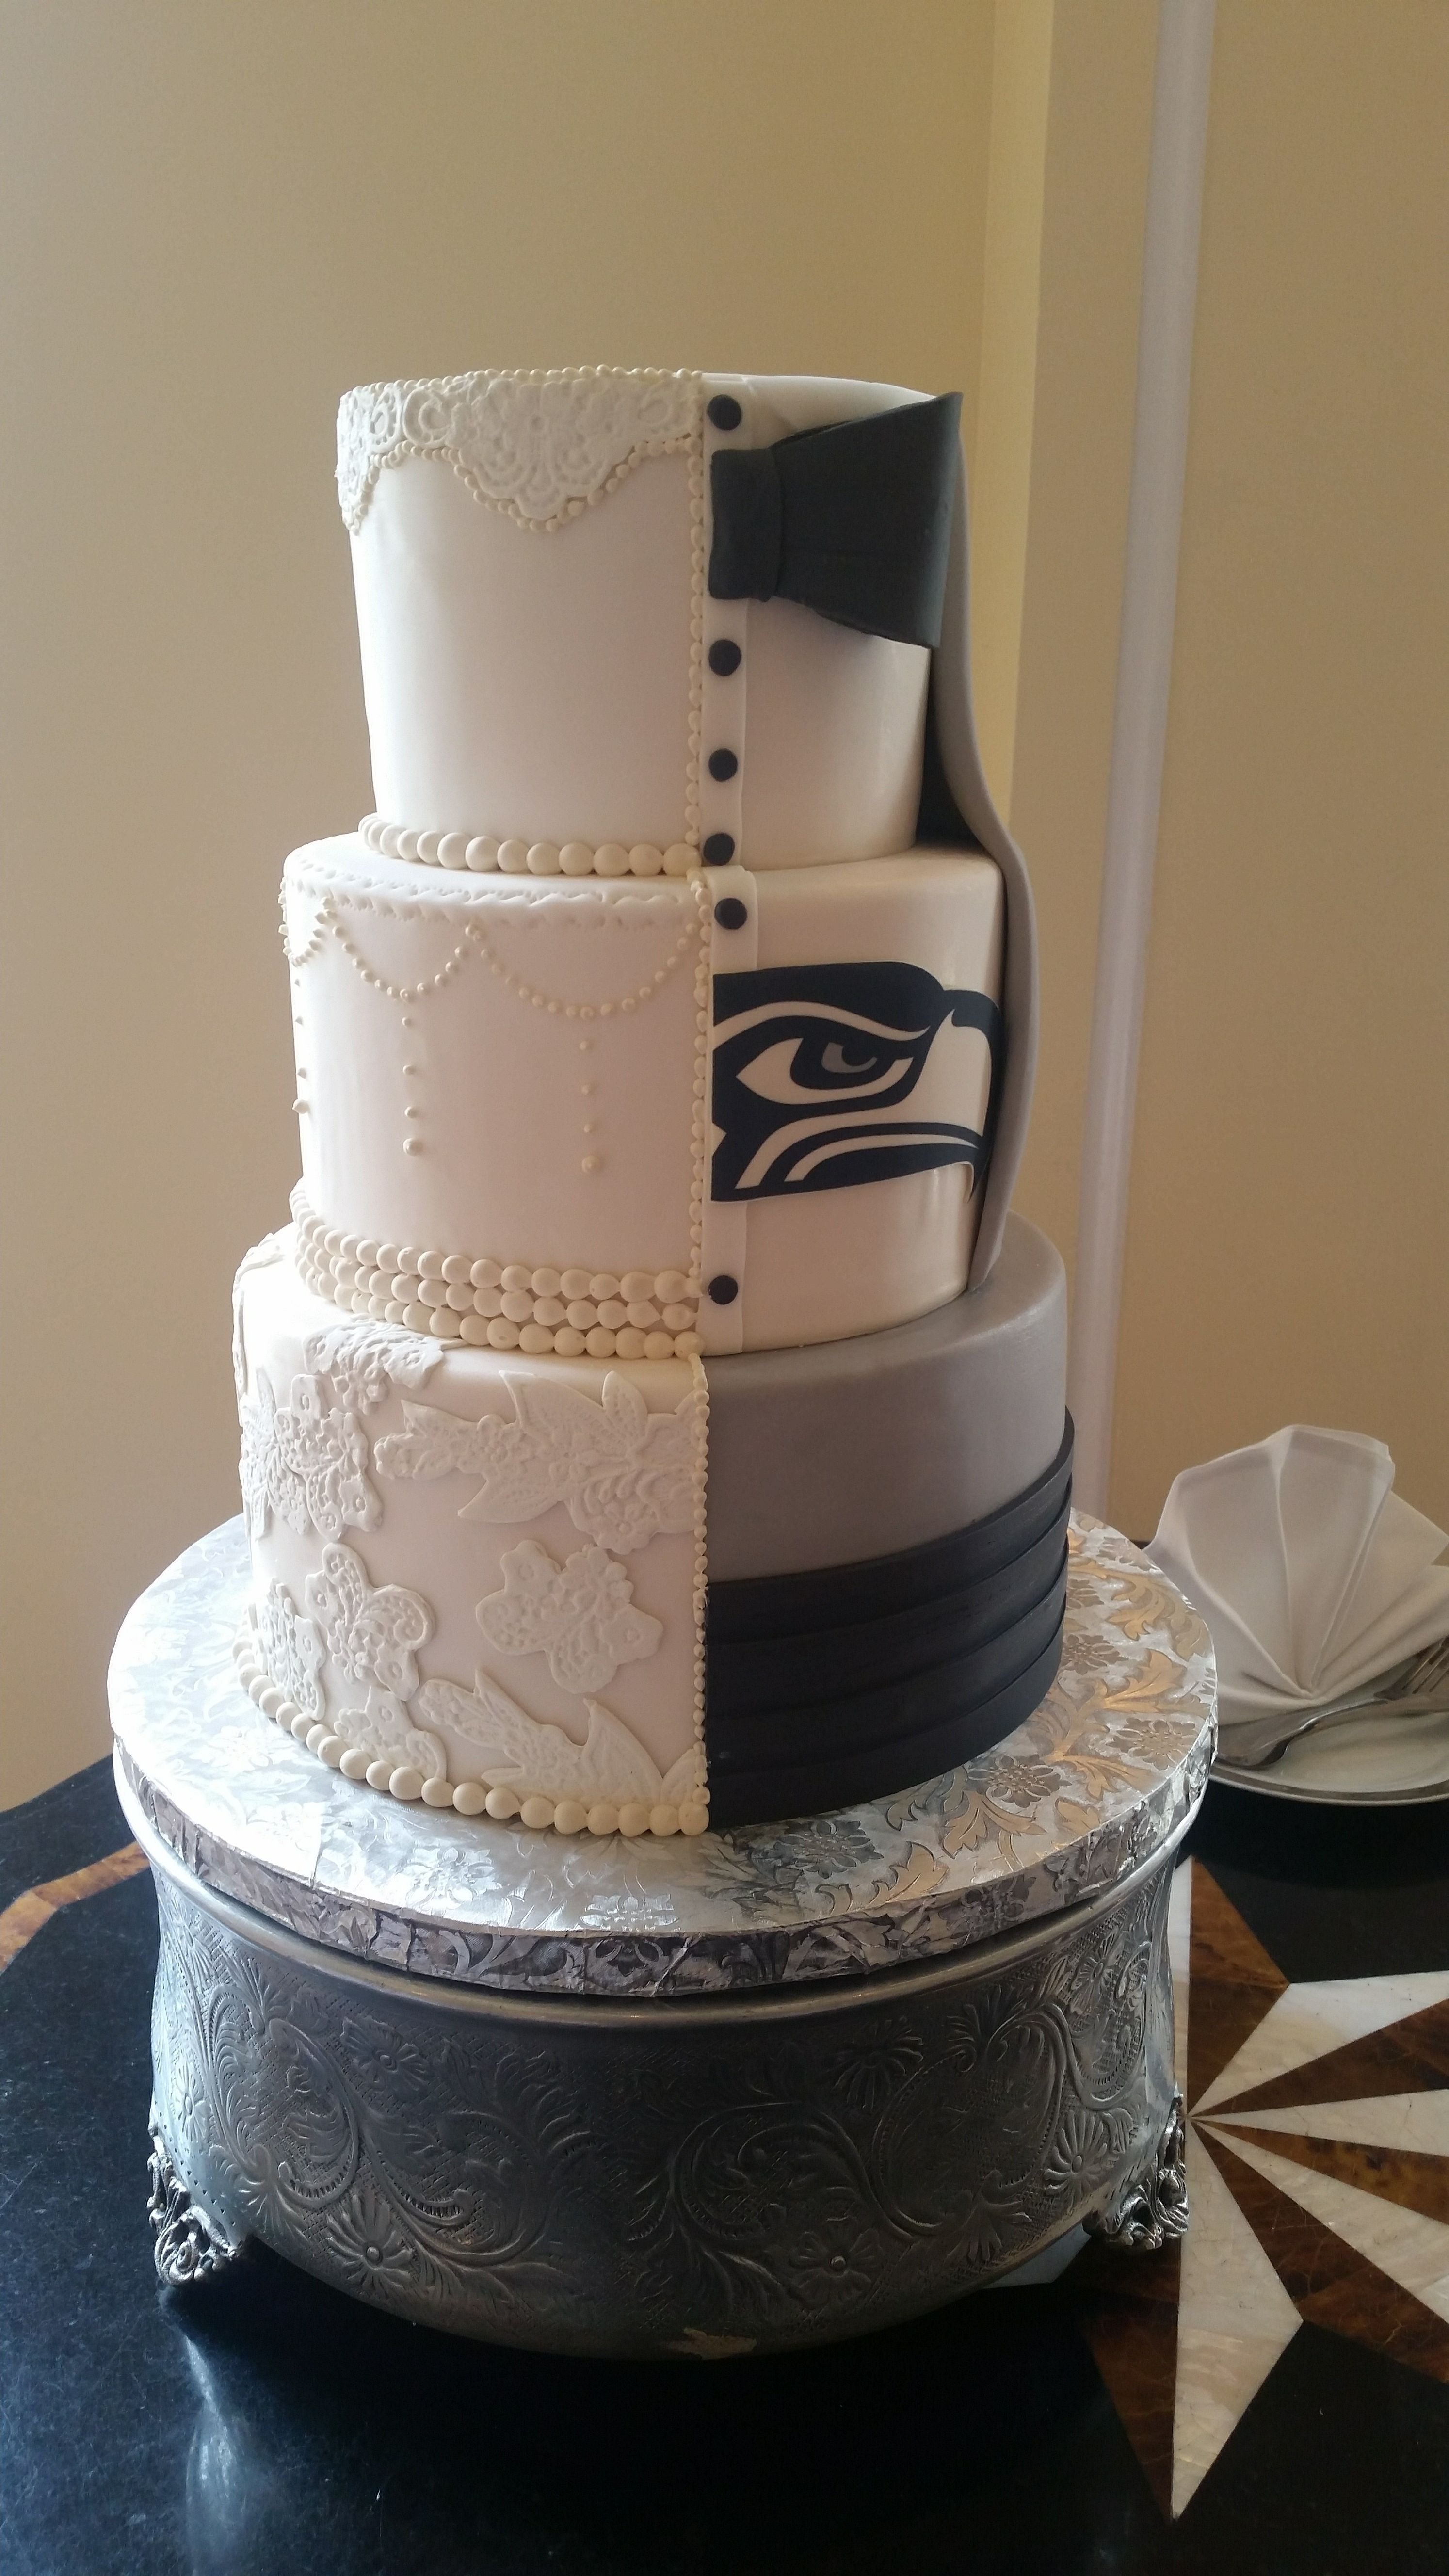 Part gorgeous traditional wedding cake part classy Seahawks